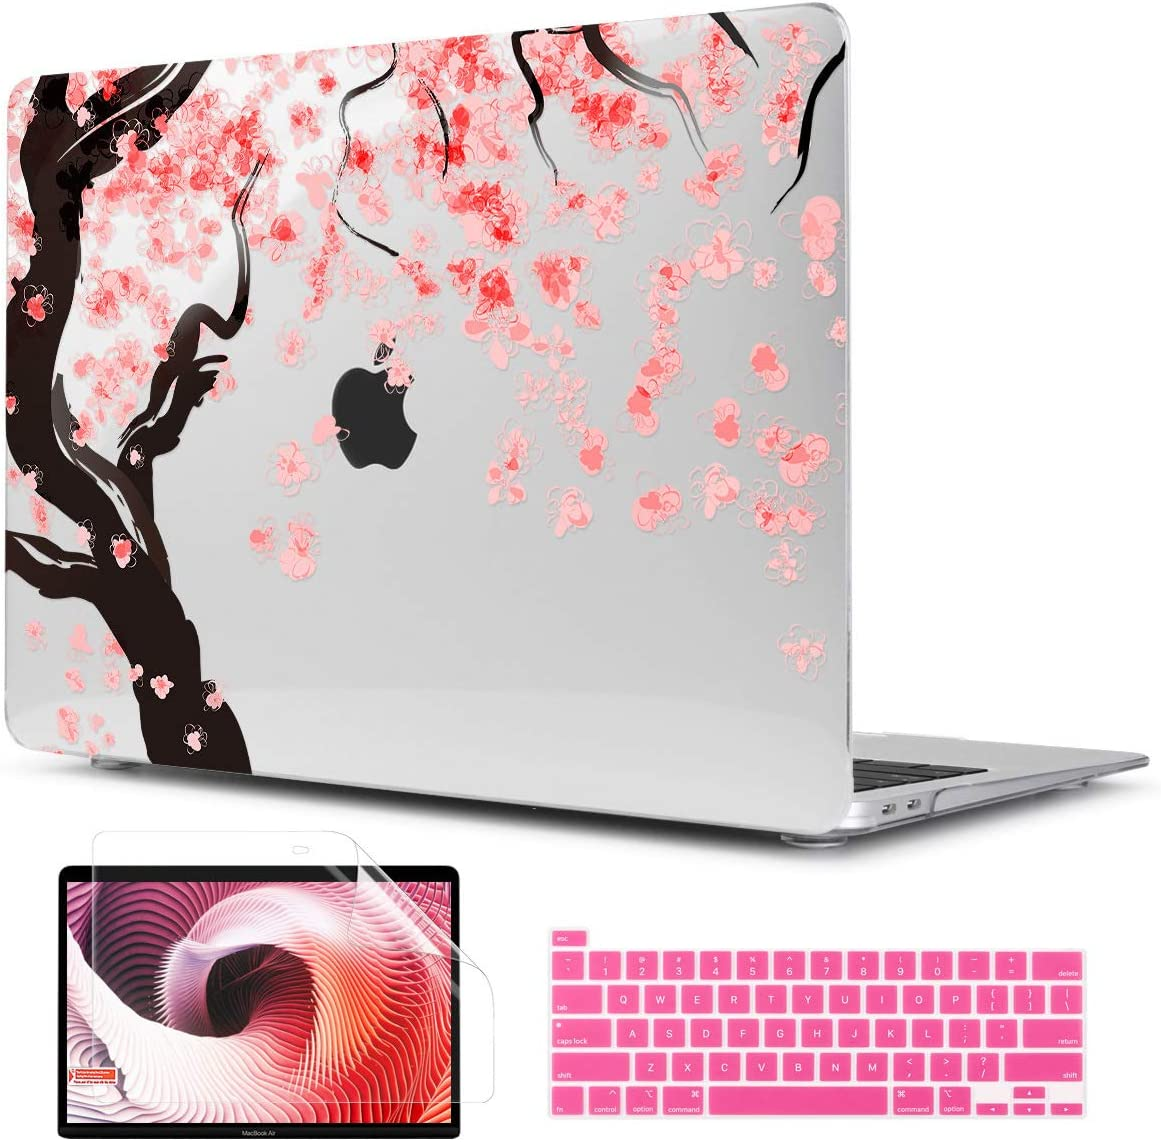 TwoL Cover for MacBook Pro 13 inch 2020, Cherry Blossoms Printed Hard Shell Case and Keyboard Skin Screen Protector for New MacBook Pro 13 A2251 A2289 Release 2020